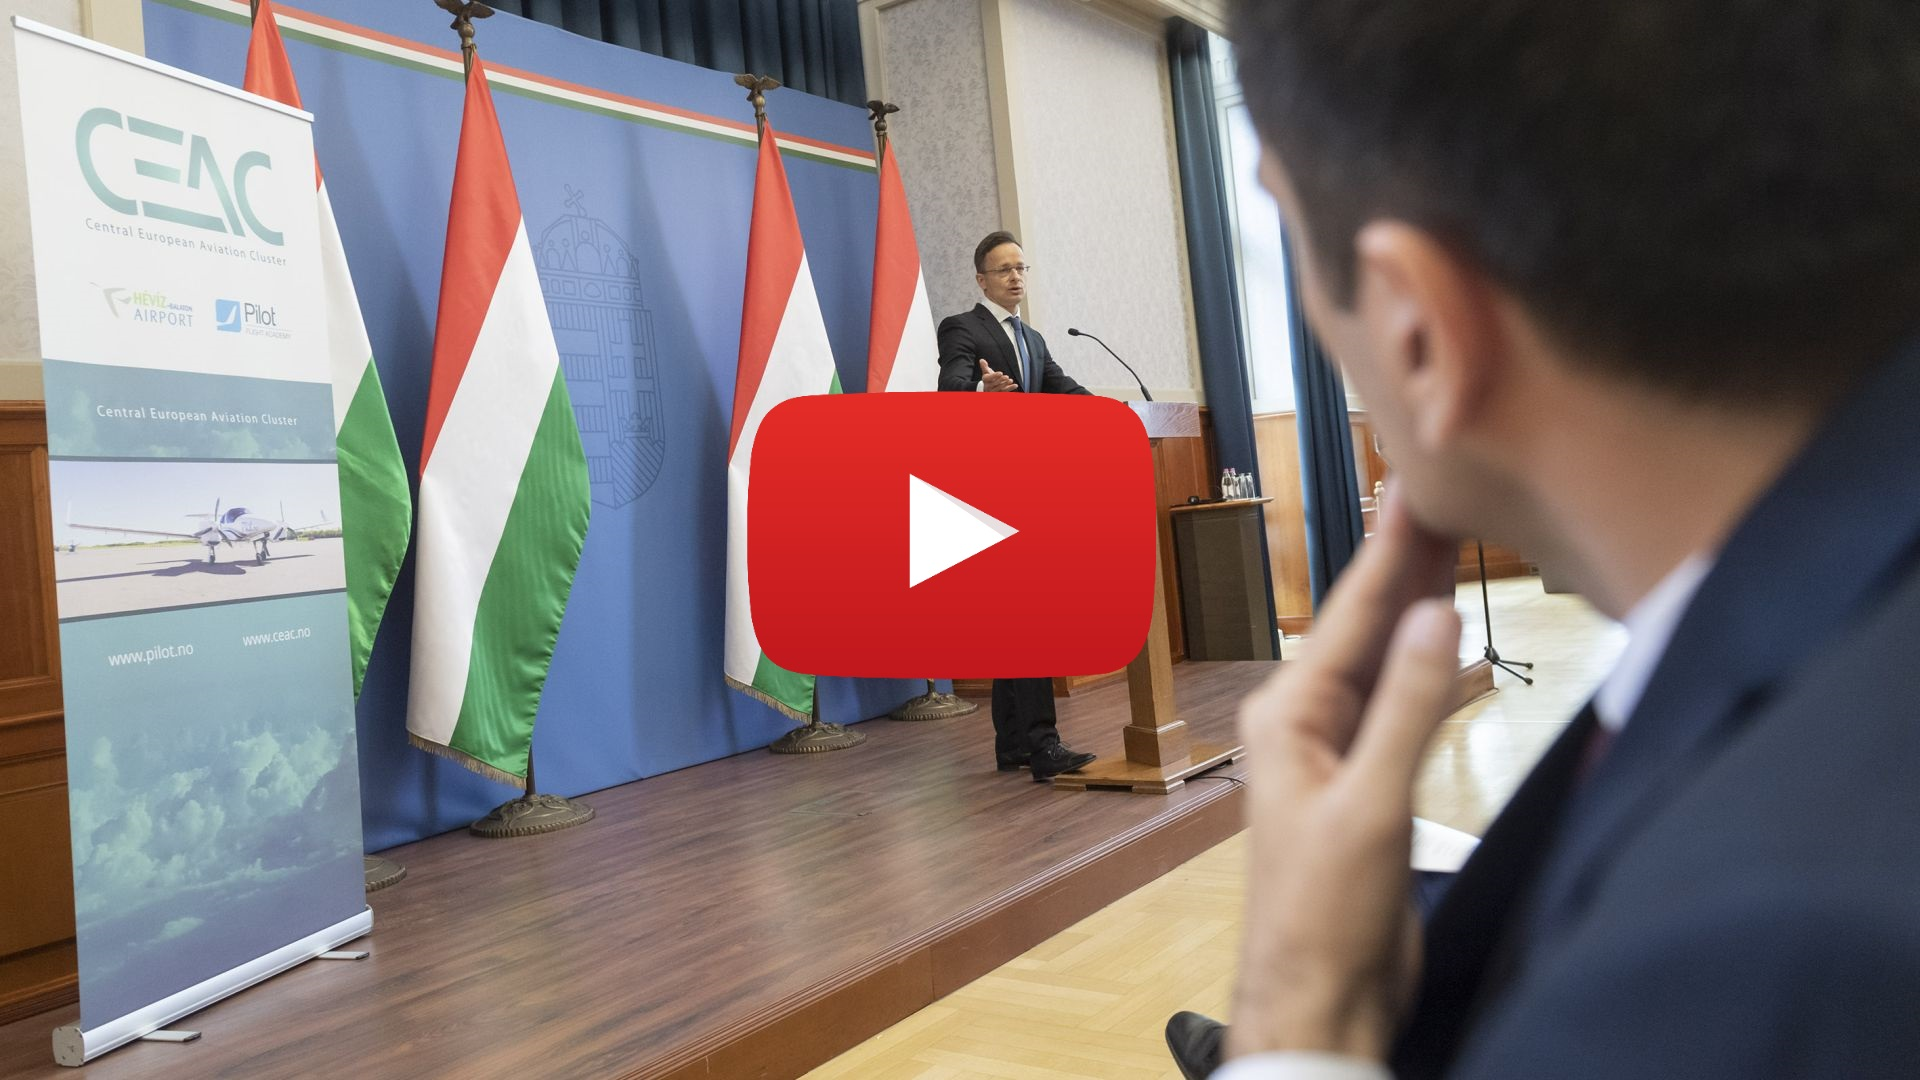 A new airline pilot academy to be established in Hungary - VIDEO REPORT